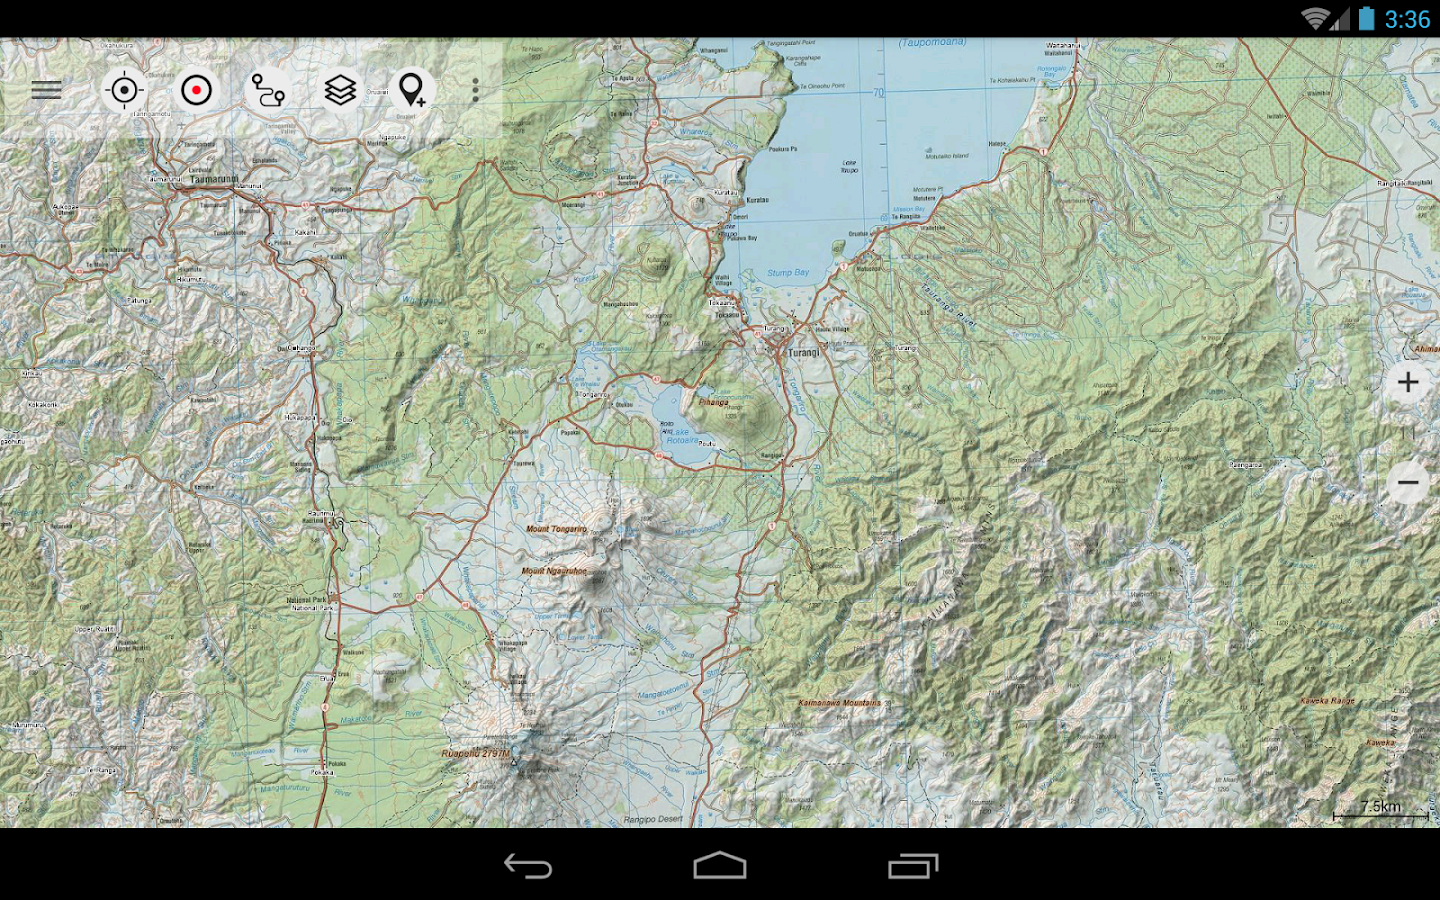 New Zealand Topo Maps Pro Android Apps On Google Play - Us elevation map google